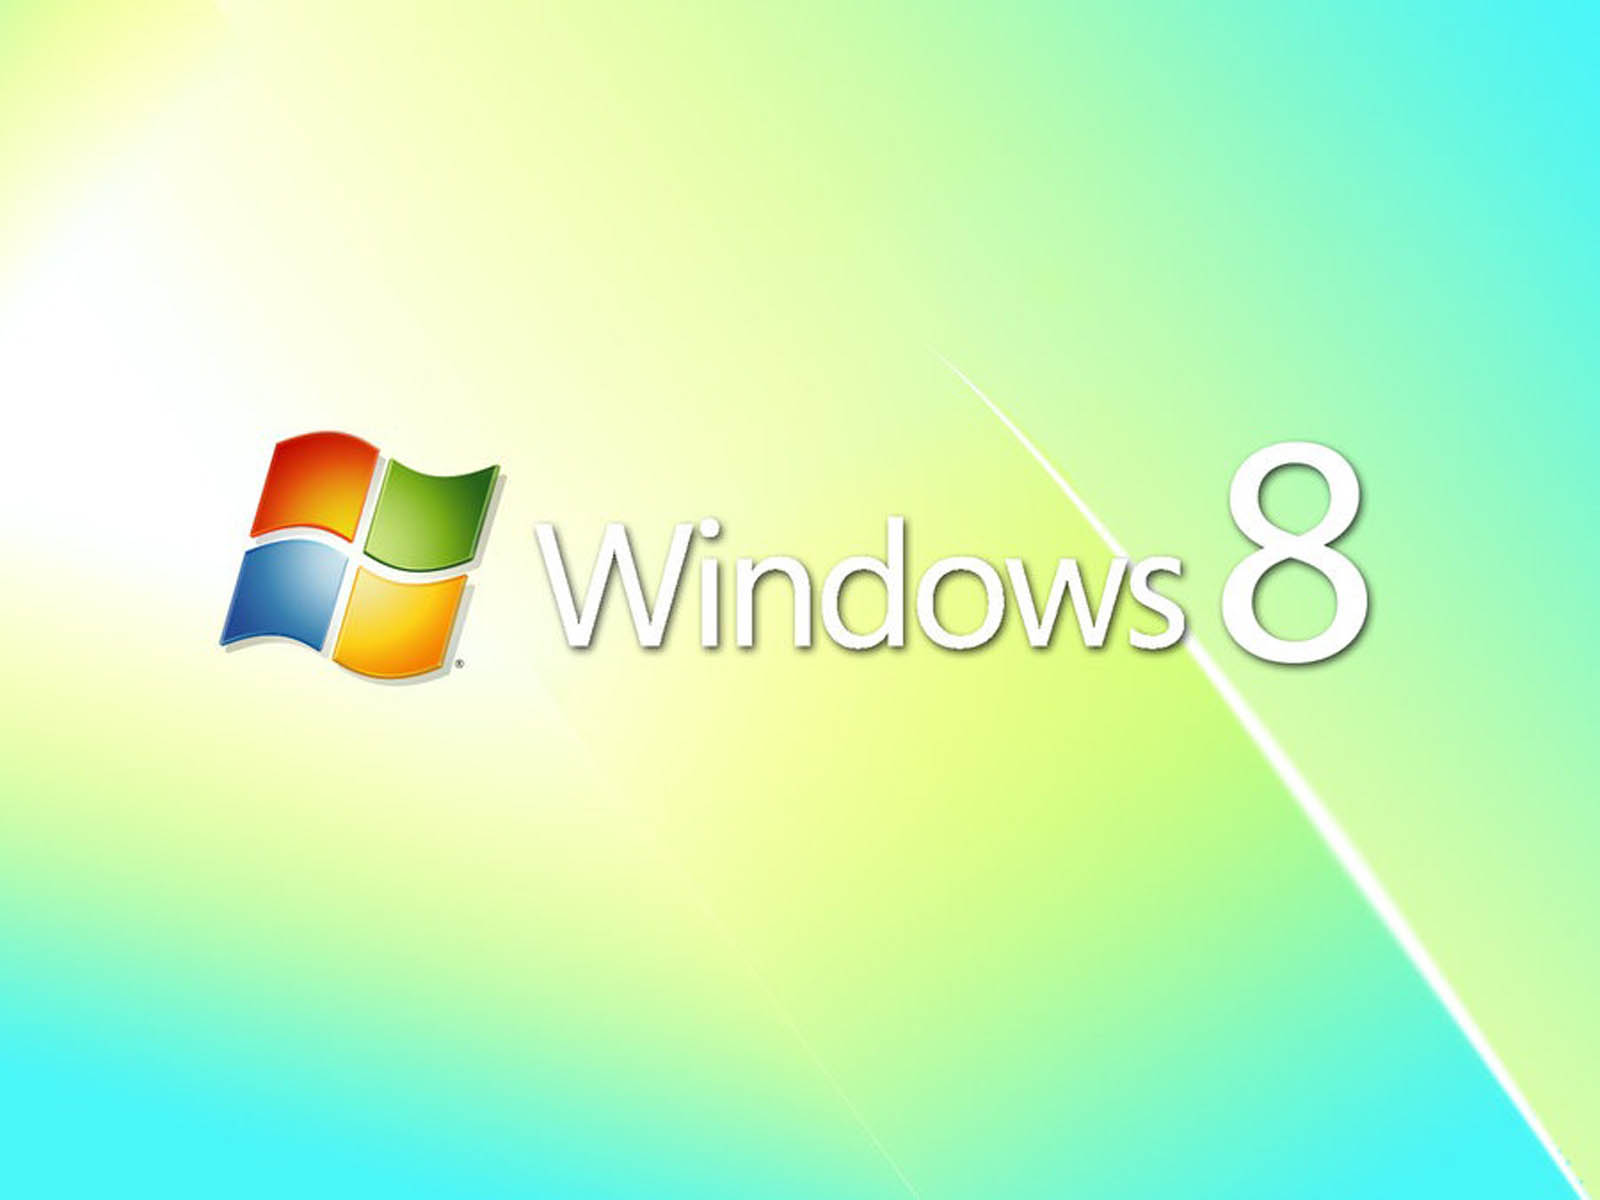 Windows 8 Wallpapers Release: Wallpaper: Windows 8 Backgrounds